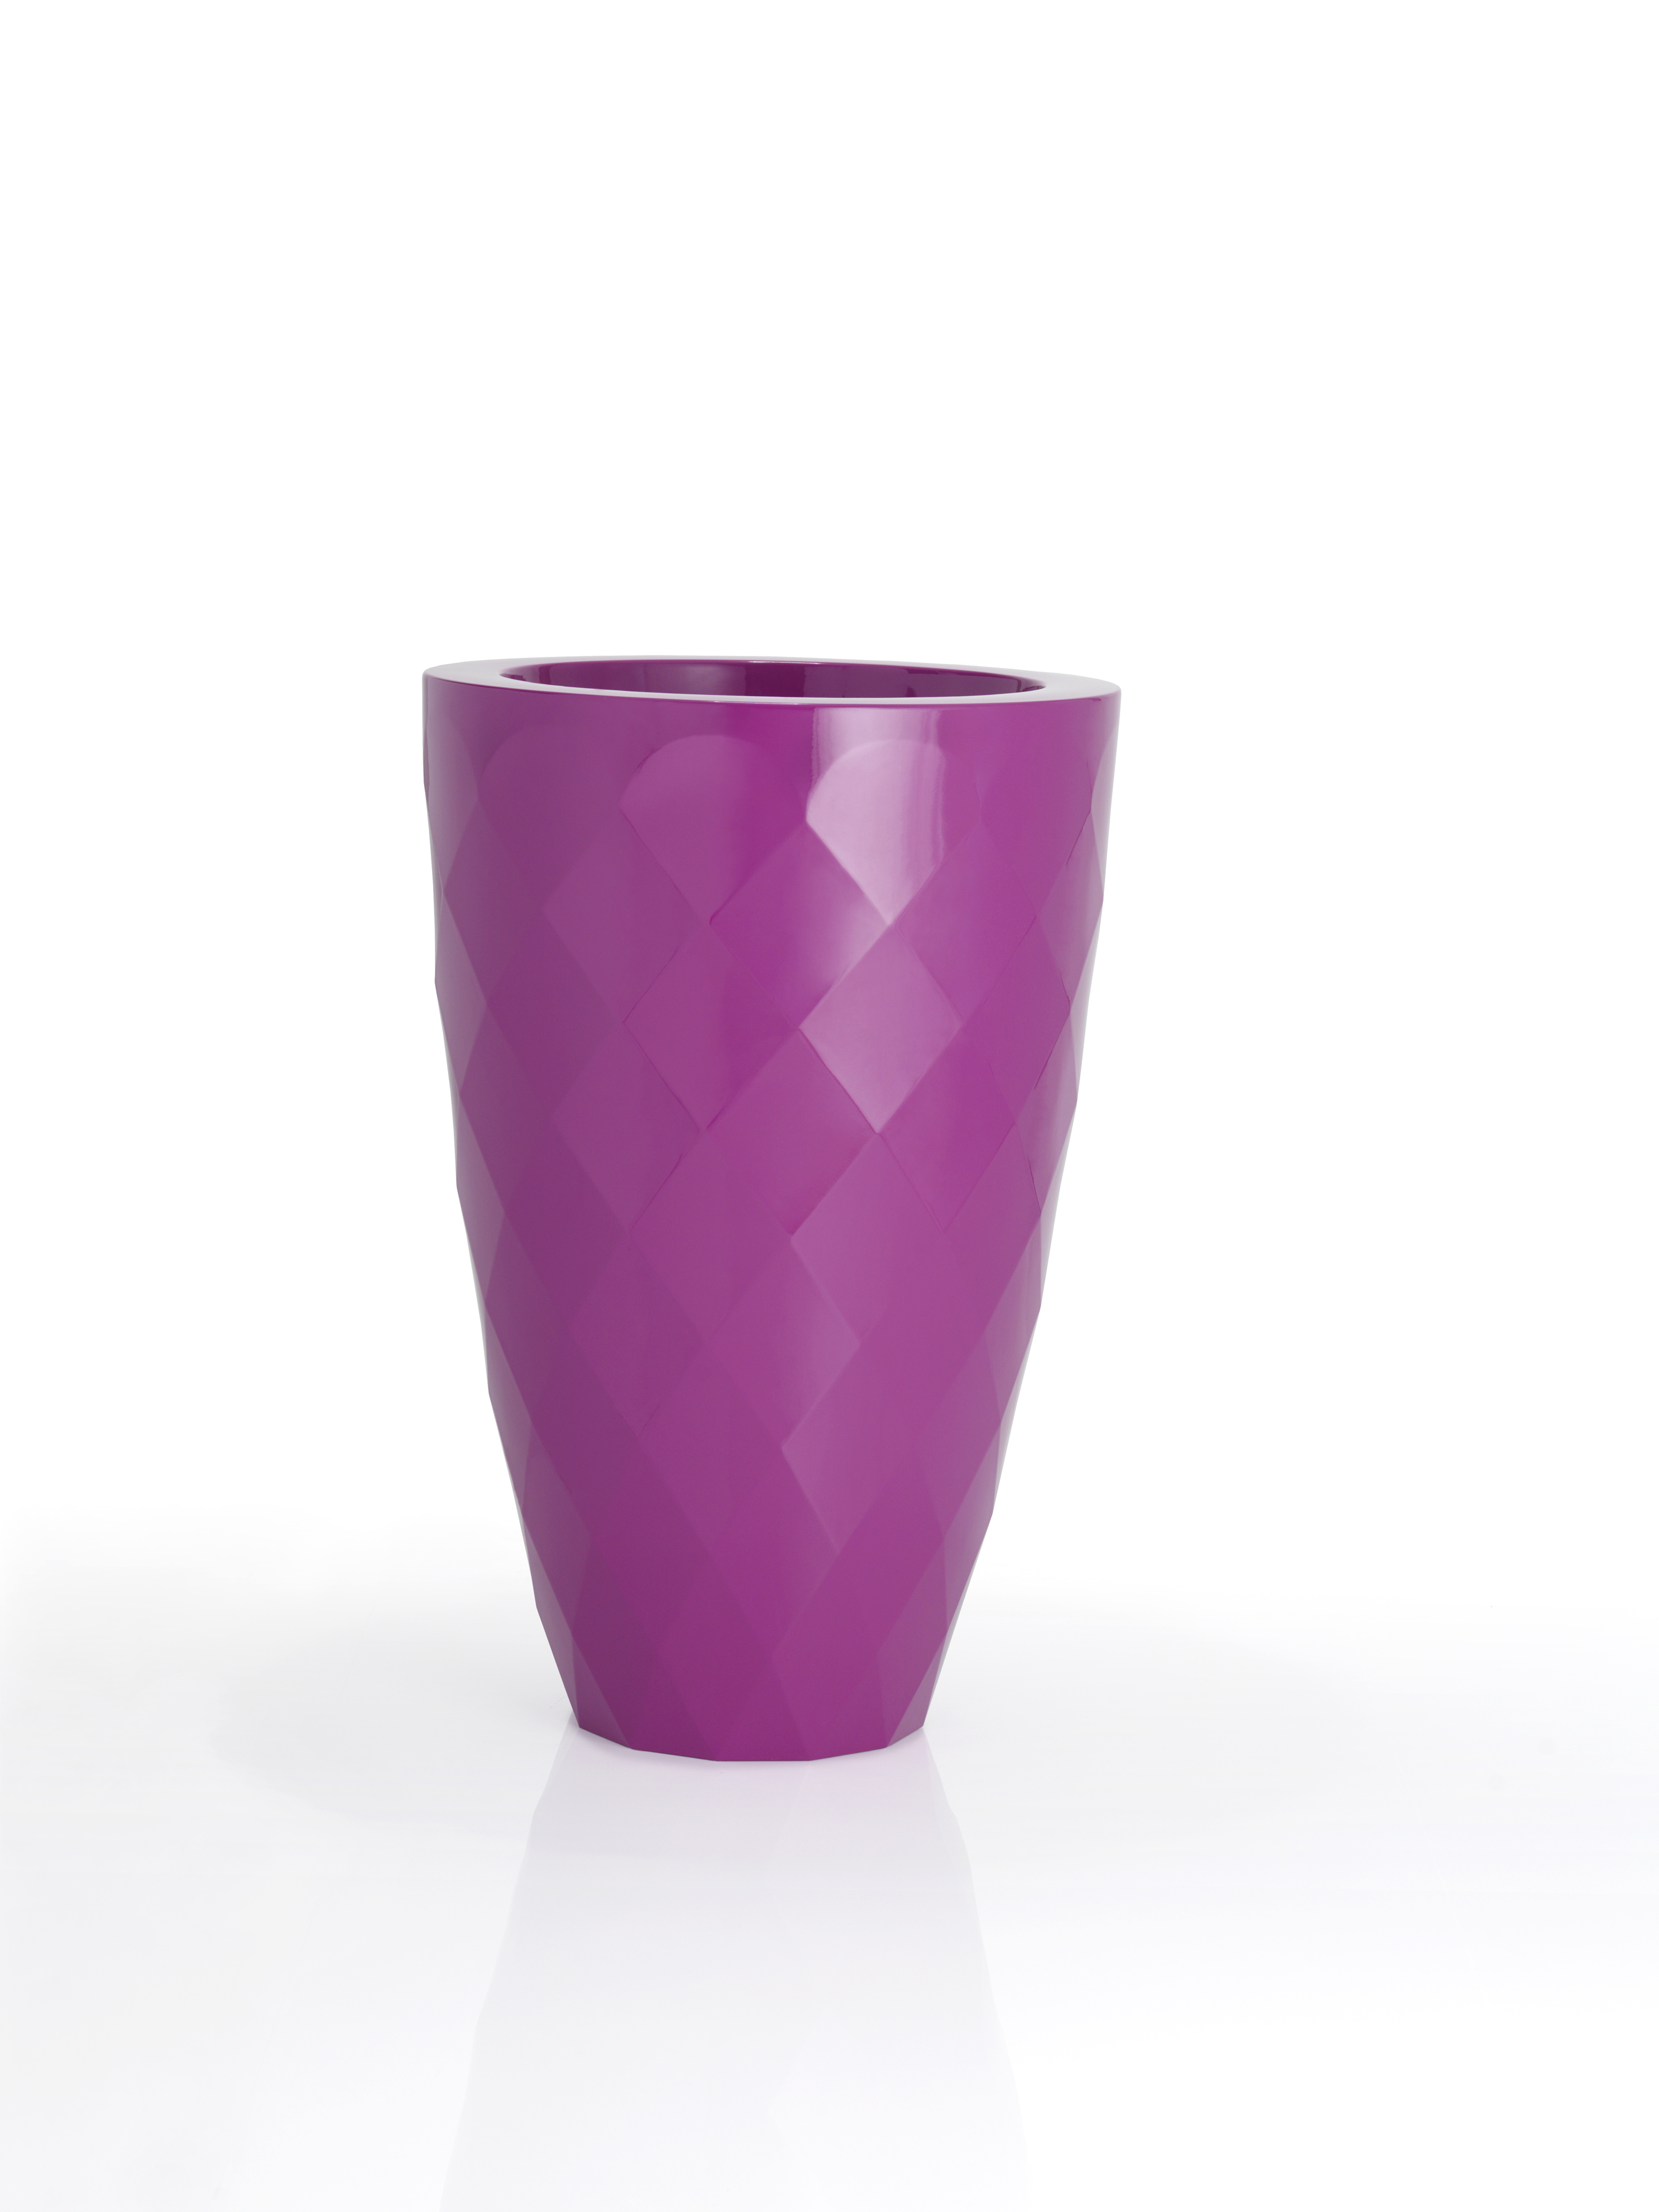 Vase decorative  VONDOM - Poza 3